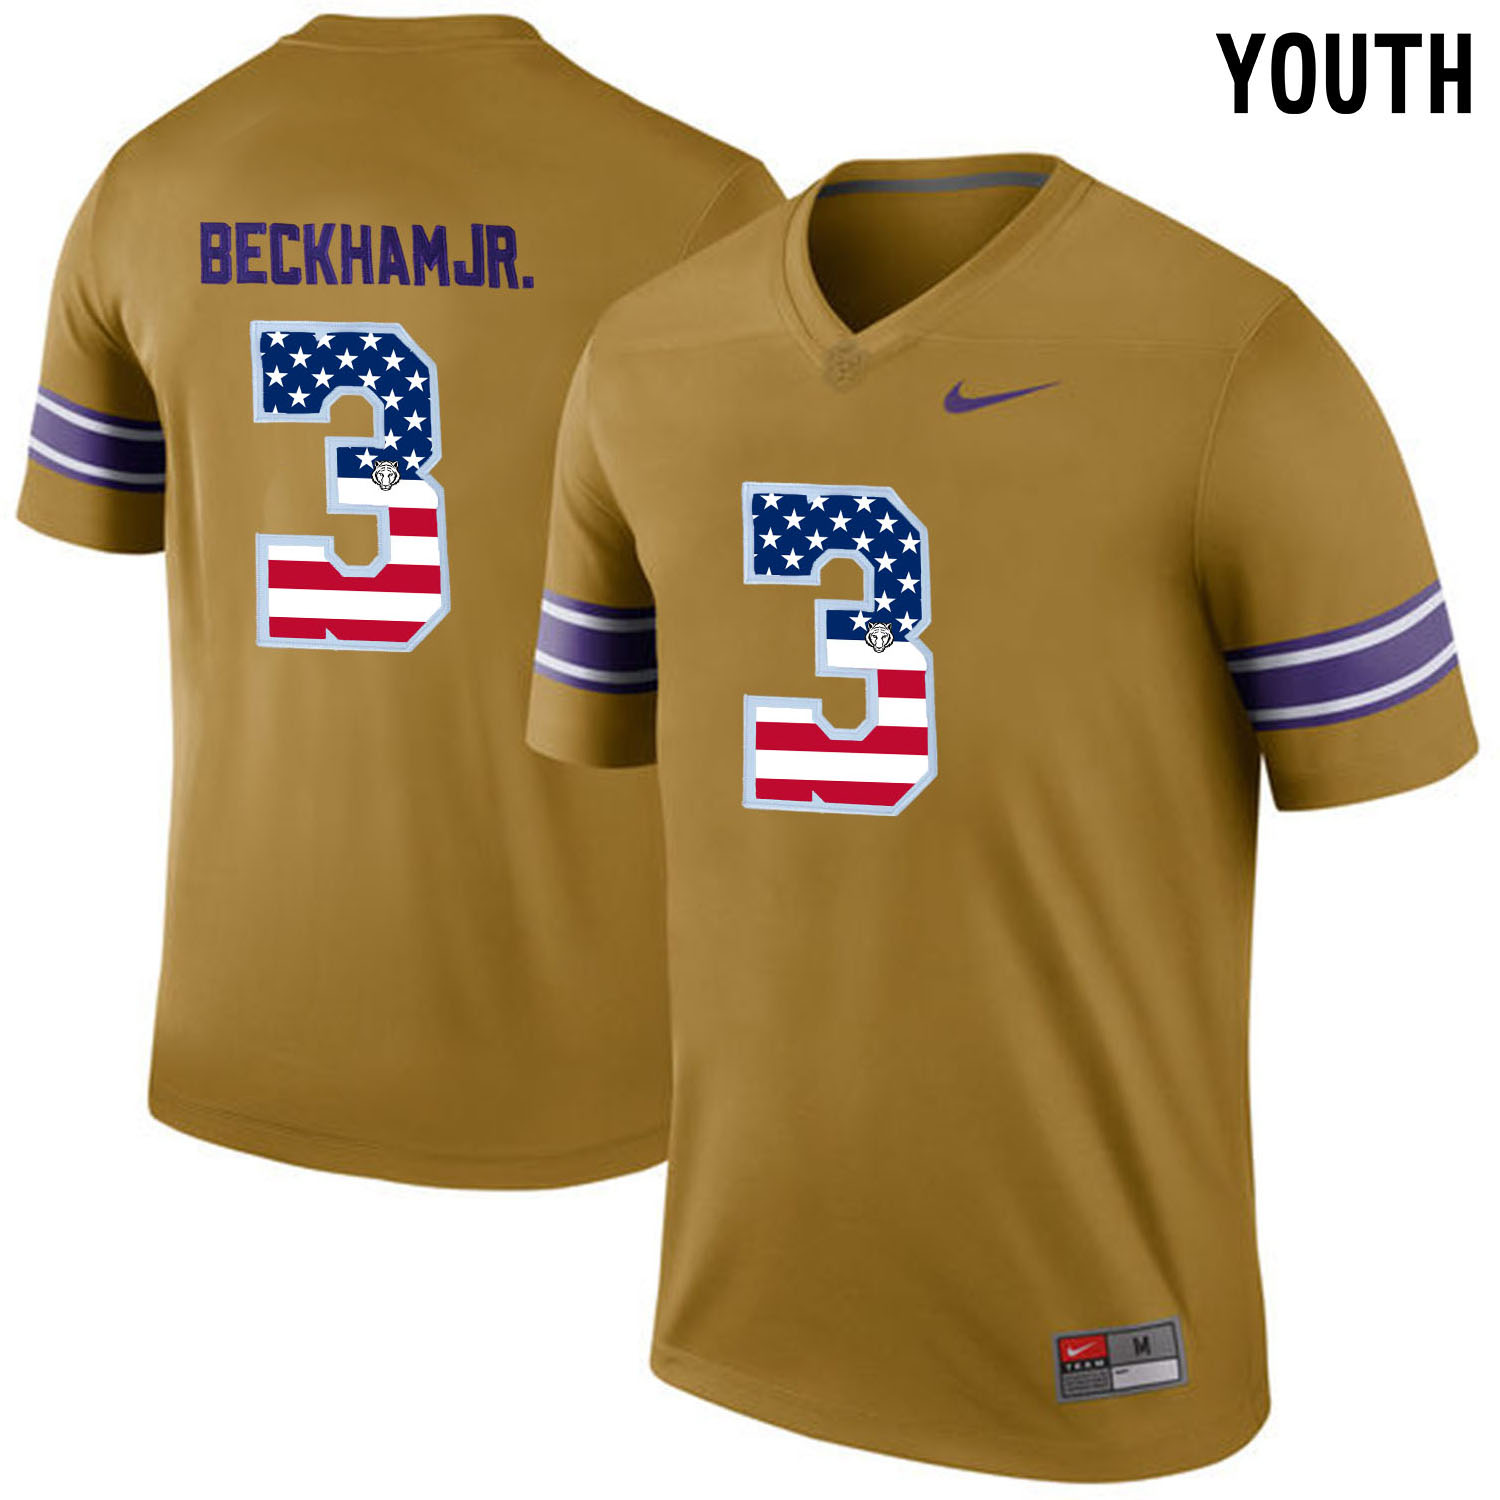 US Flag Fashion Youth LSU Tigers Odell Beckham Jr. 3 College Football Limited Throwback Legand Jersey Gridiron Gold